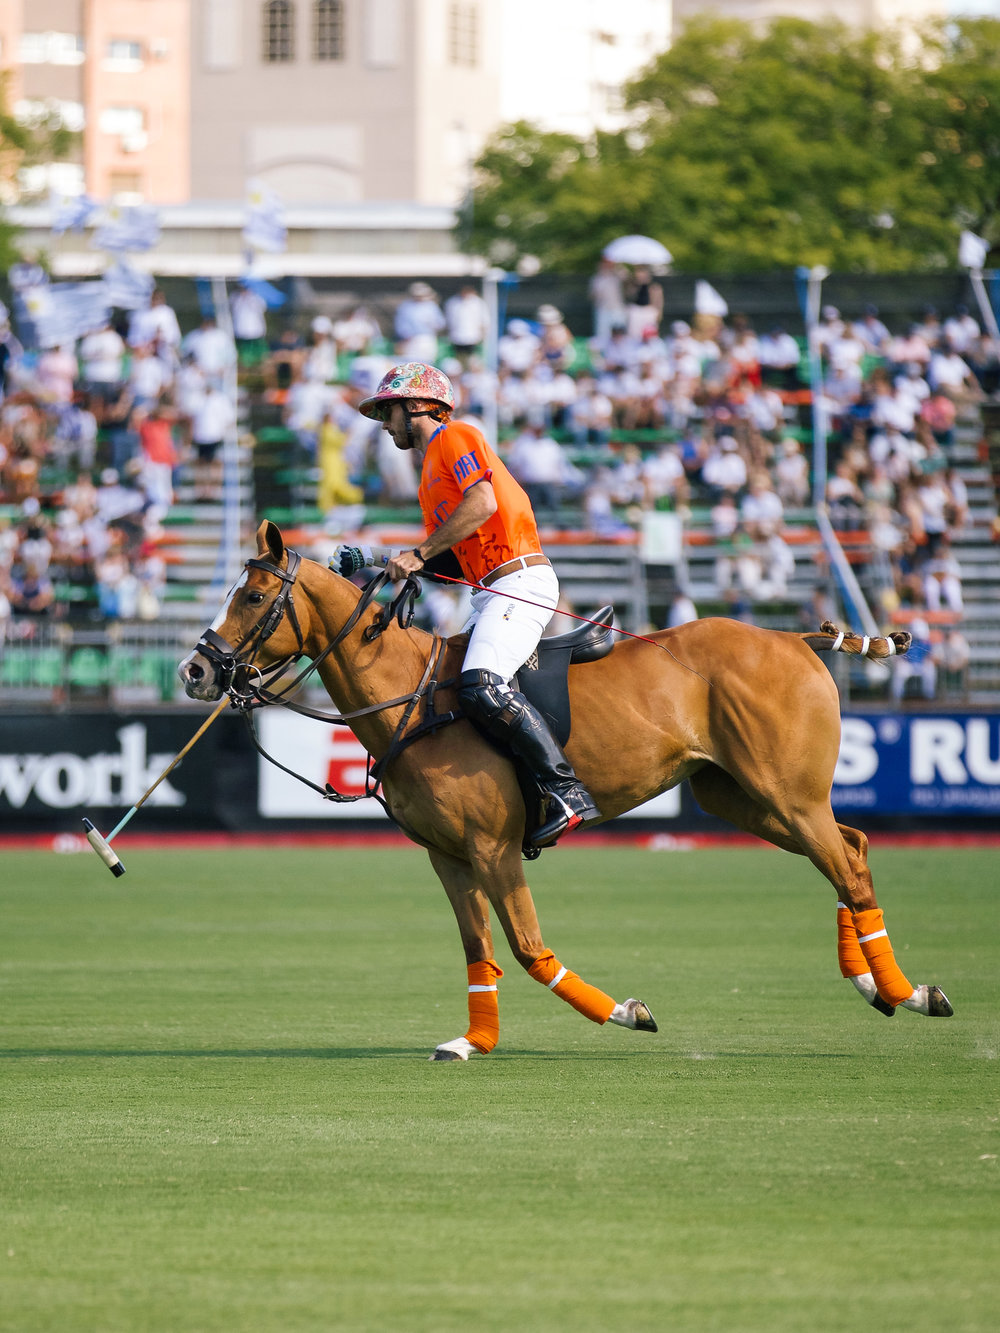 LCB STYLE ARGENTINE OPEN POLO PALERMO11.jpg